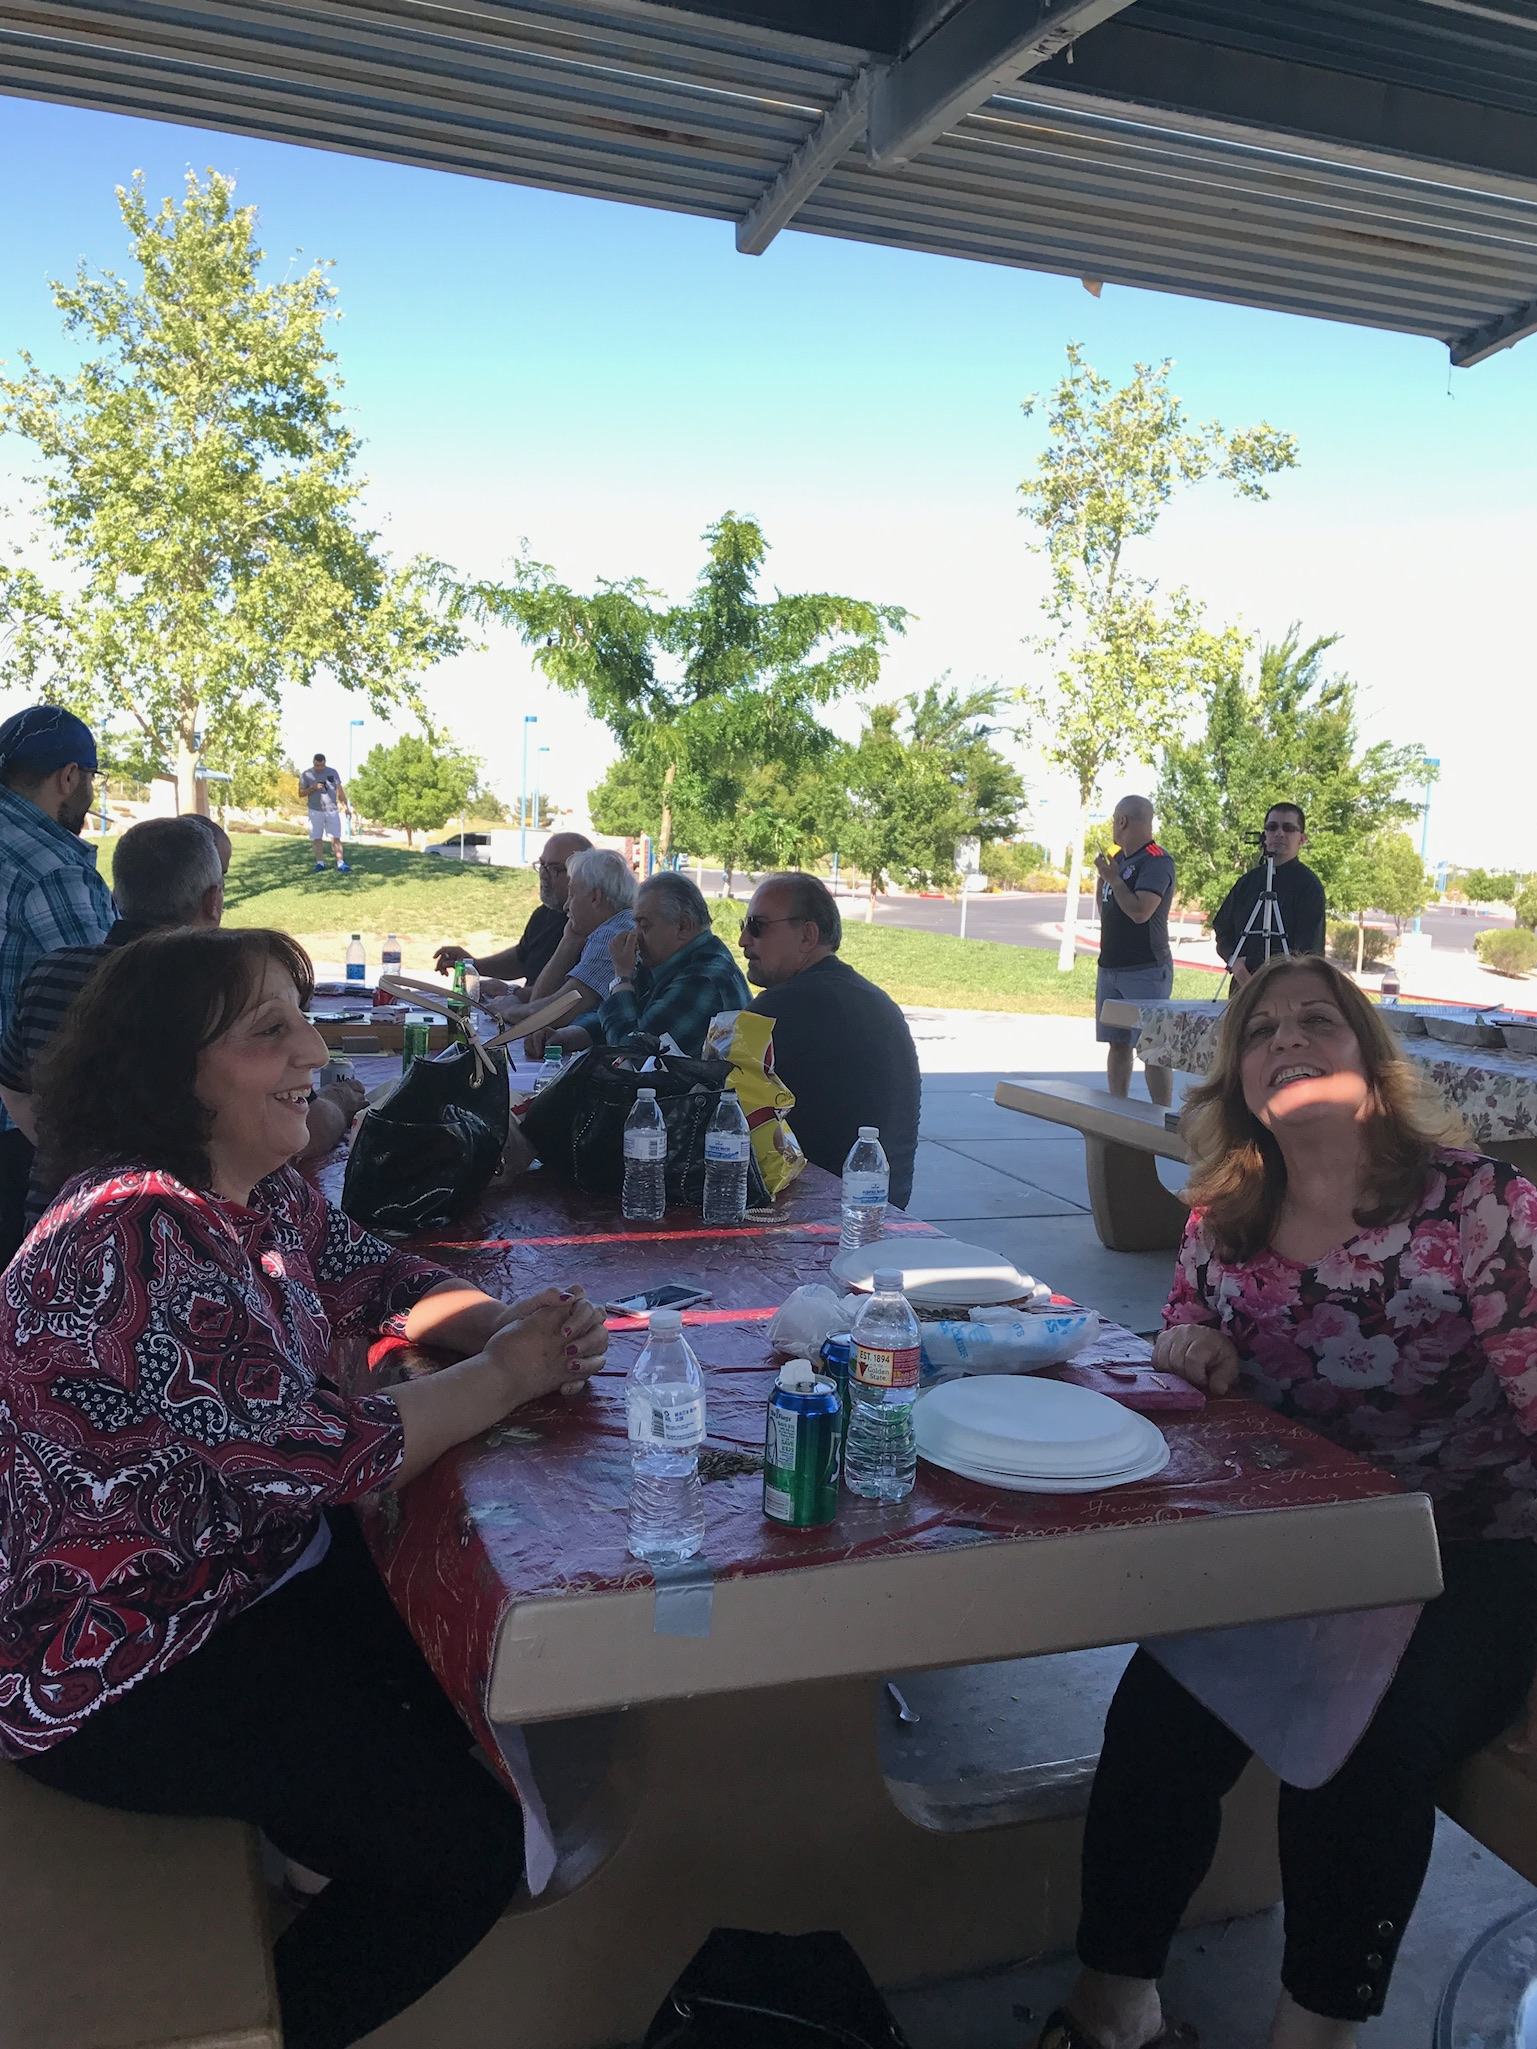 Pictures from the church picnic on Sunday, 04/30 | St